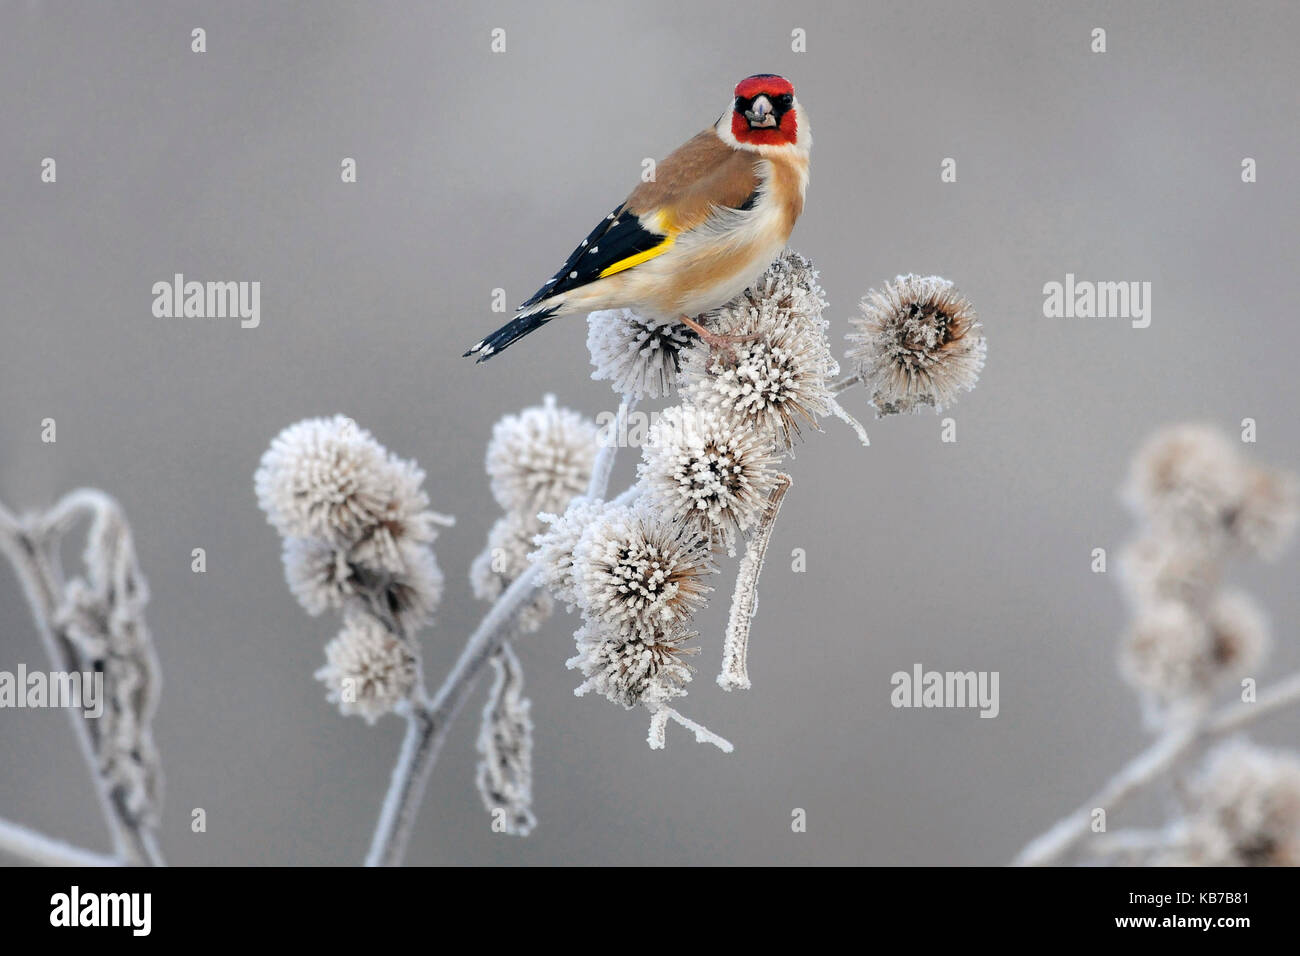 European Goldfinch (Carduelis carduelis) foraging on the seeds of a Burdock (Arctium sp.) thistle, The Netherlands - Stock Image